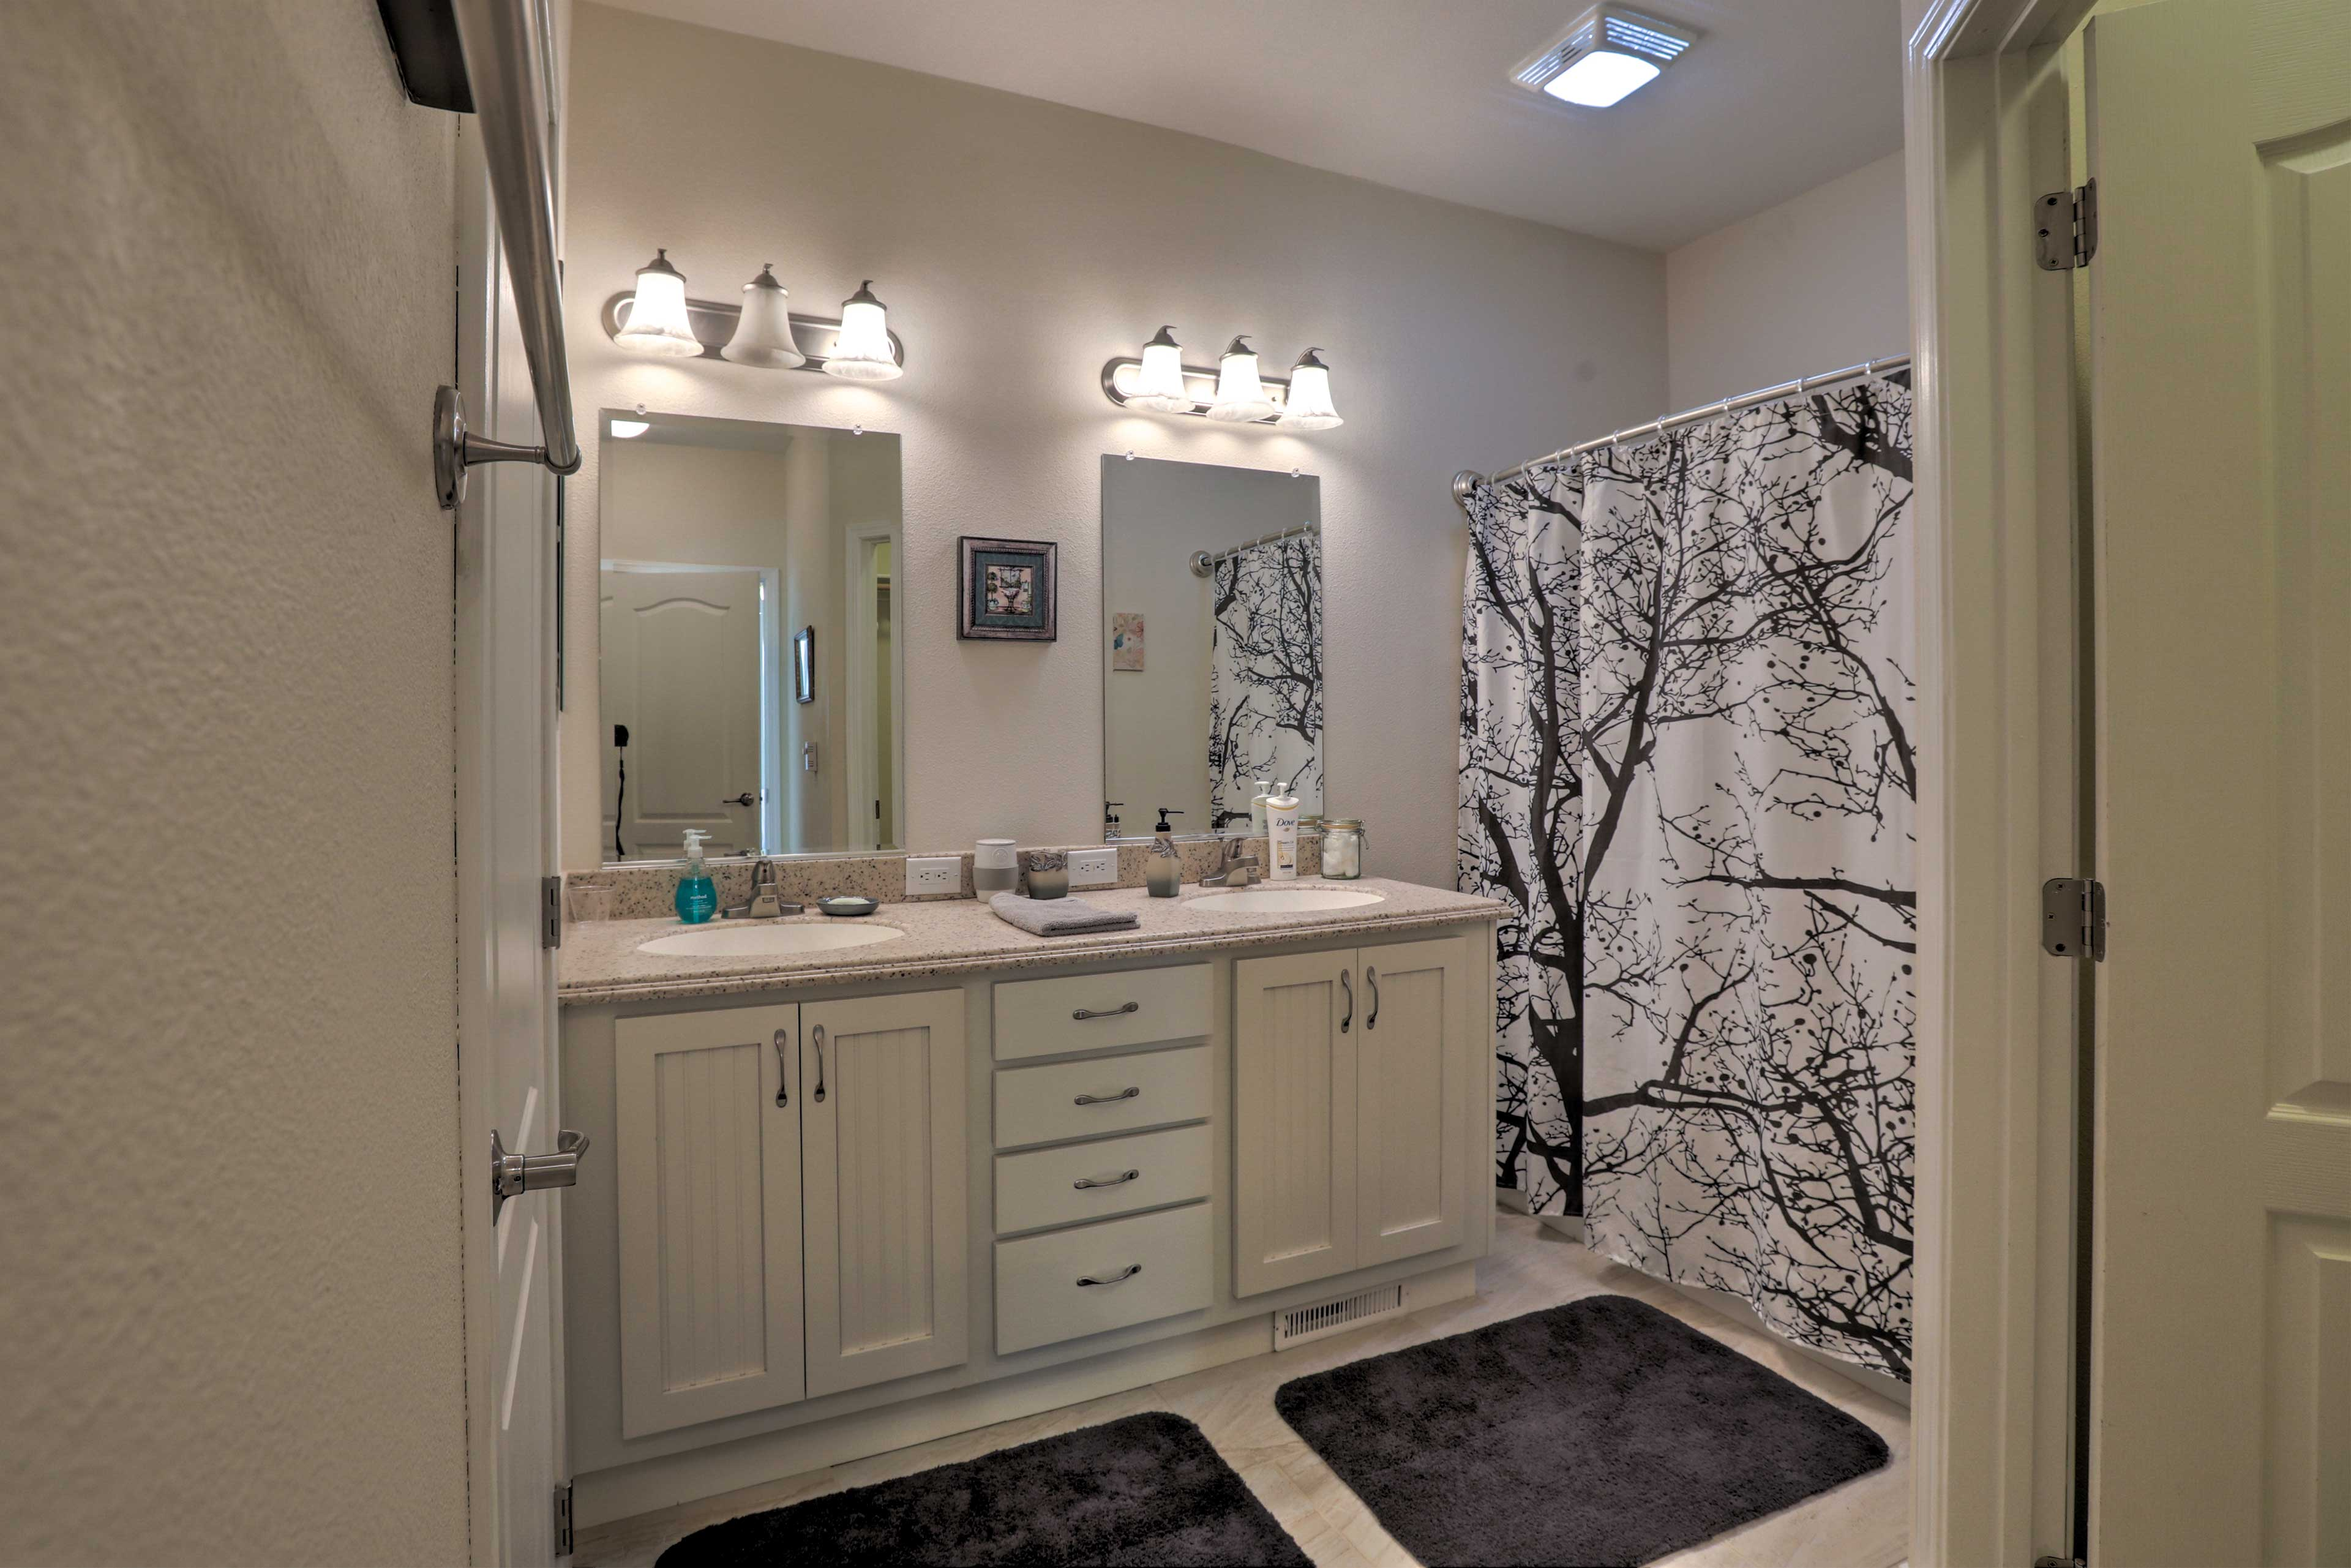 Double vanities are a welcome sight!